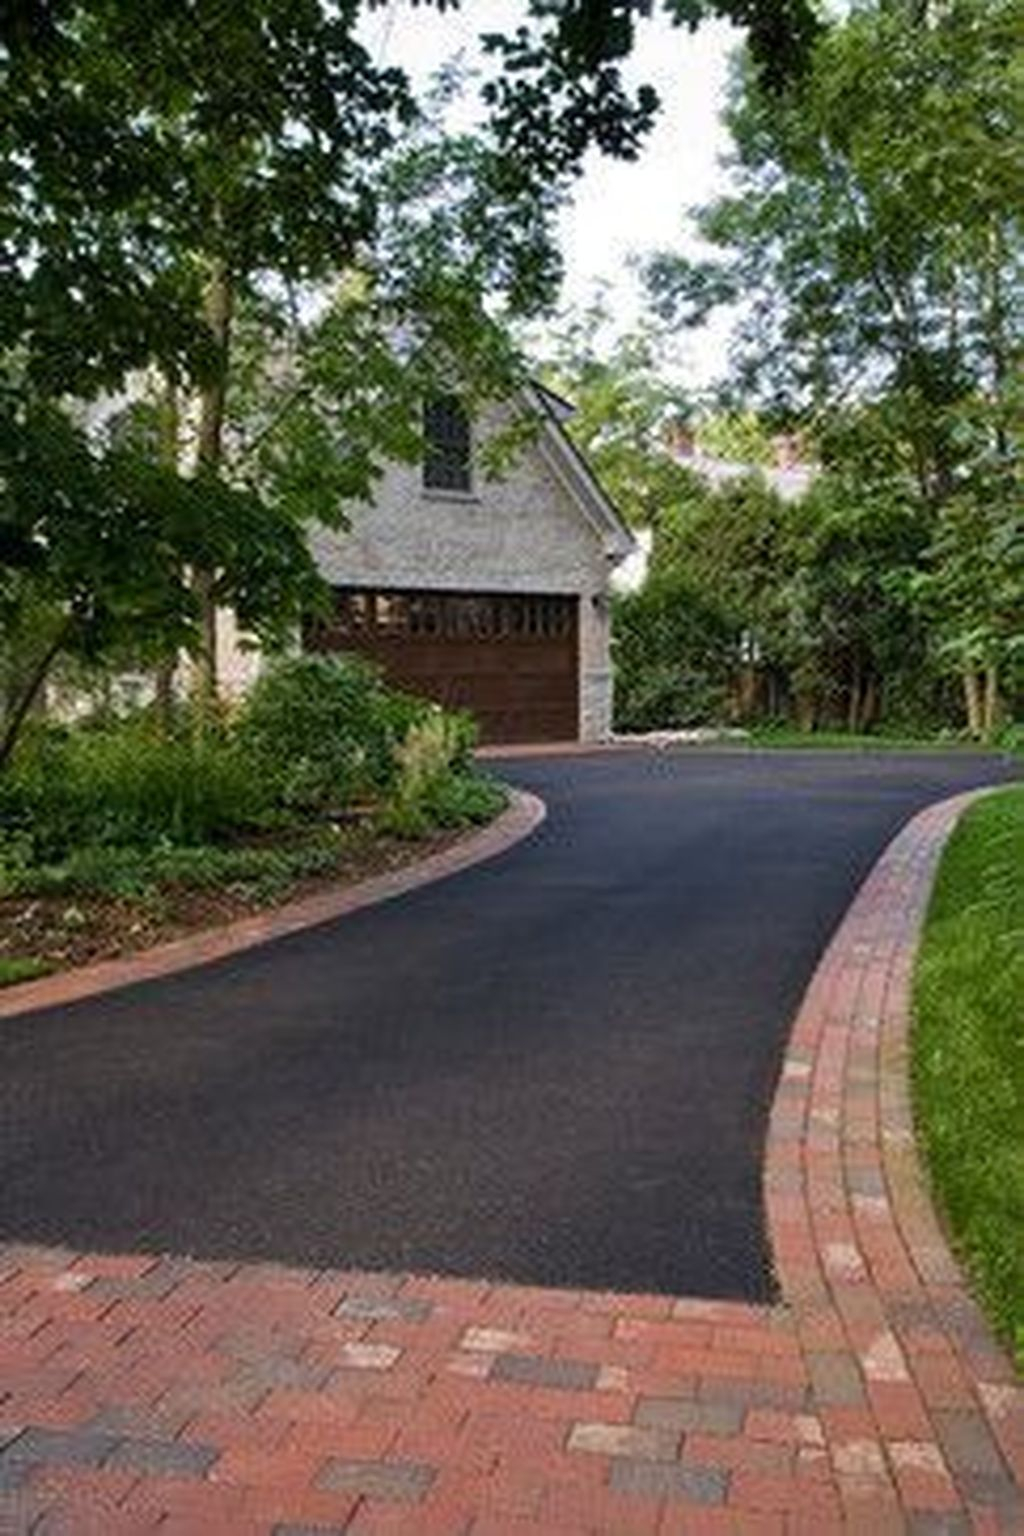 Fabulous Driveway Landscaping Design Ideas For Your Home To Try Asap 20